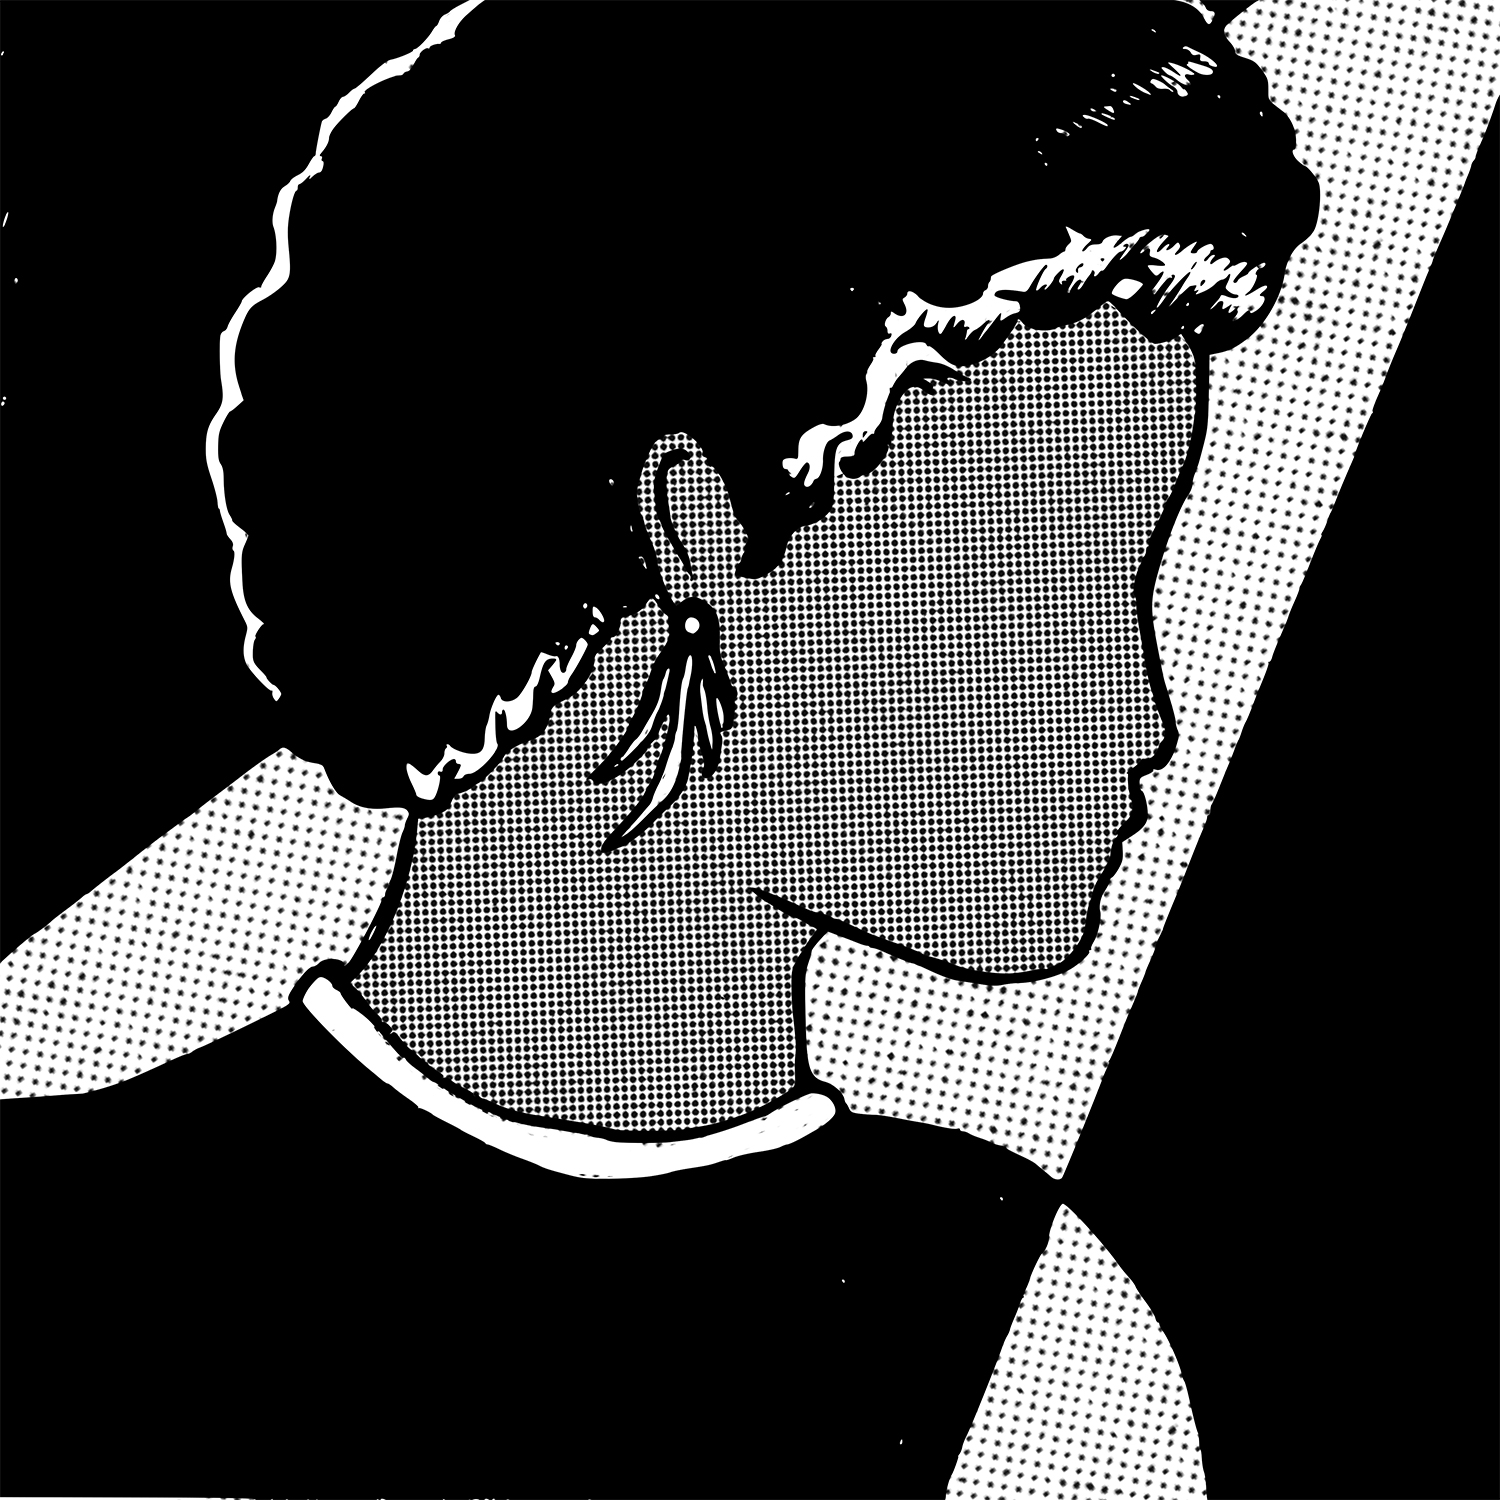 A grayscale illustration of a dark-skinned person with no facial features looking to the right of the frame. Their face is shaded using dot work. Their hair is in a short afro and they're wearing white dangling earrings. The background is black, and there's a ray of white that resembles a spotlight coming from the top right corner. This spotlight is also shaded with dot work, but it's much lighter. Illustration by Ruth Mascelli.